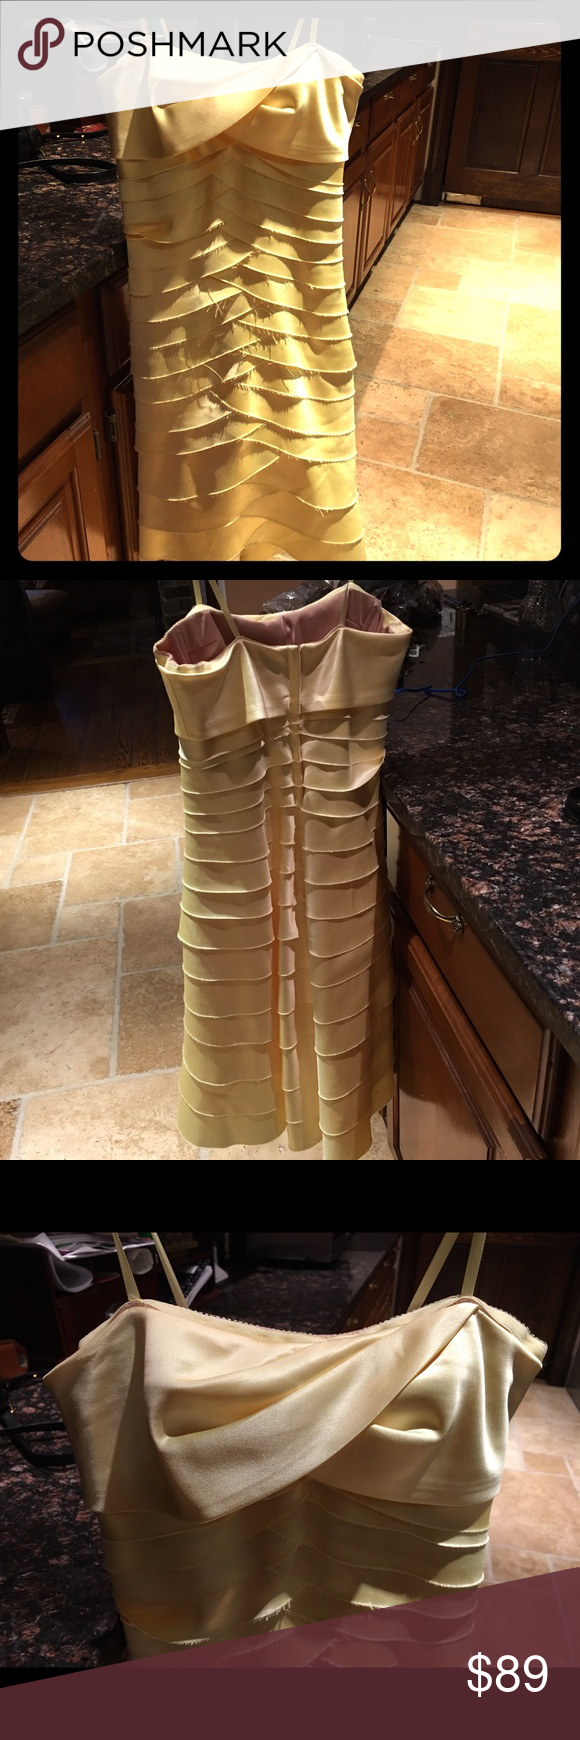 BCBG Max Azria yellow gold strapless dress xs 0/2 BCBG Max Azria yellow gold tiered strapless dress, taken in to fit a size xs 0/2! Beautiful, never worn and in perfect condition! Questions and offers welcome. NWOT BCBGMaxAzria Dresses Strapless